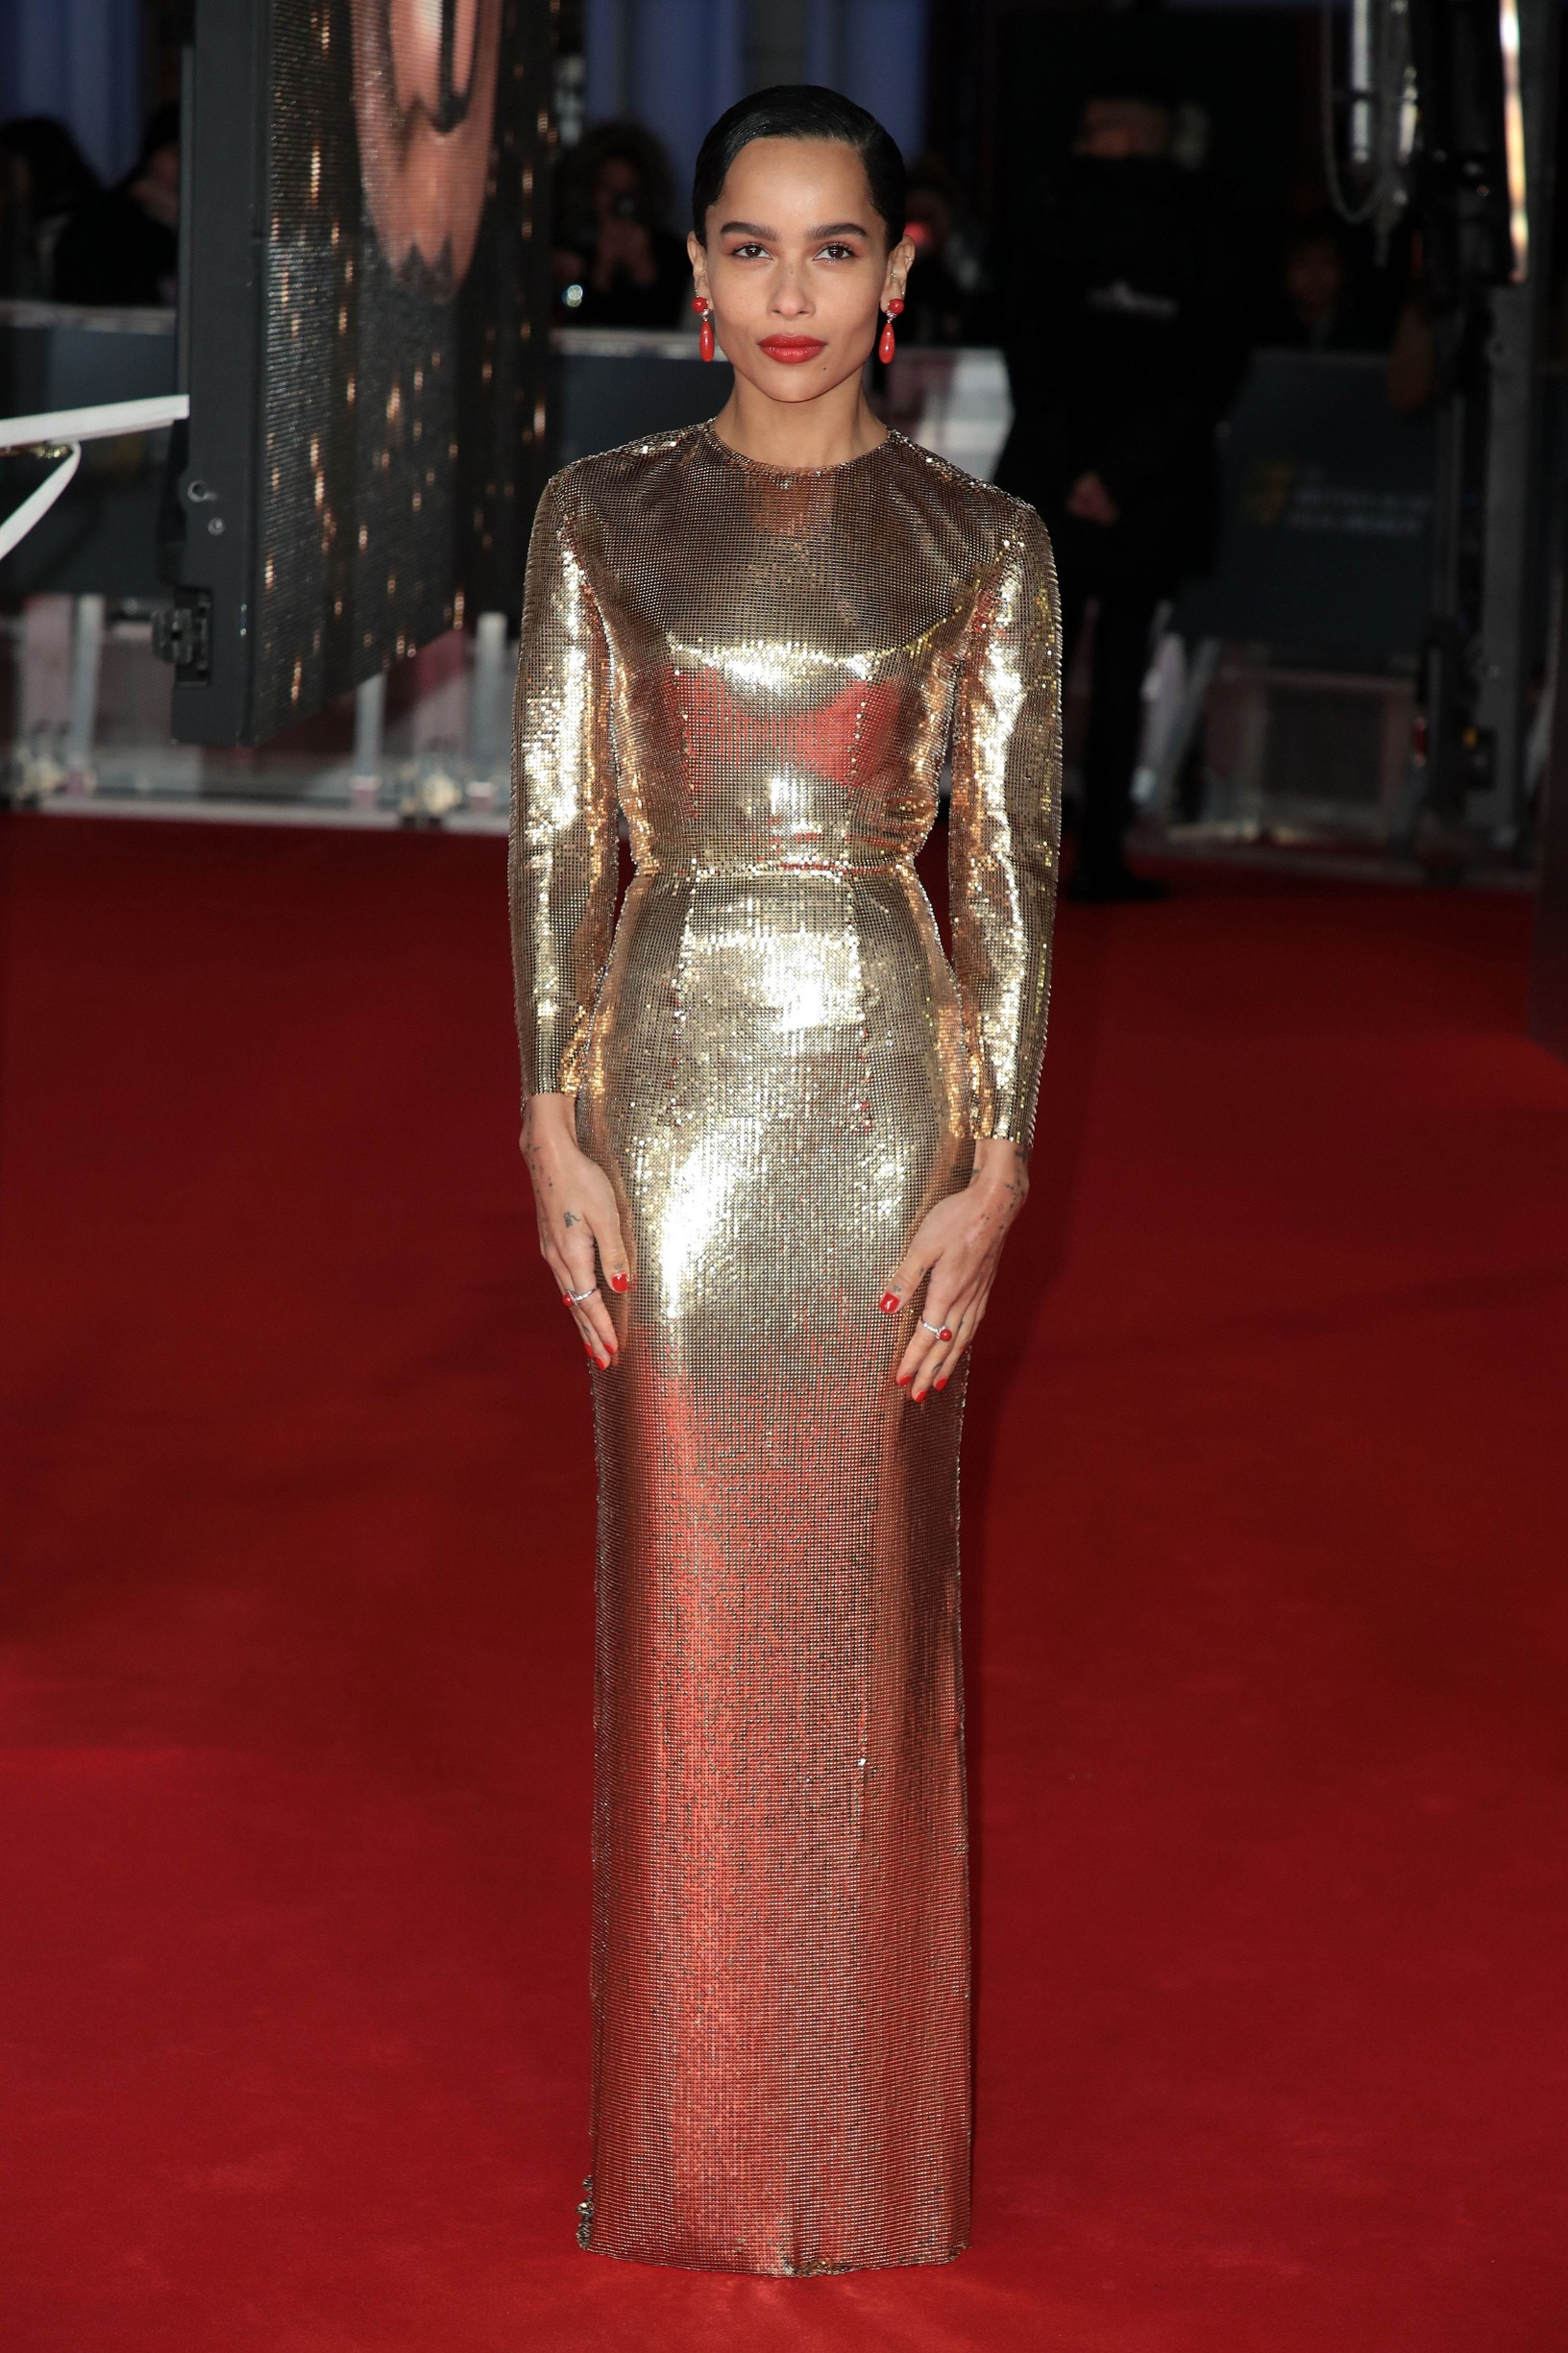 Zoe Kravitz at the 73rd British Academy Film Awards,Image: 496175466, License: Rights-managed, Restrictions: WORLD RIGHTS - Fee Payable Upon Reproduction - For queries contact Avalon.red - sales@avalon.red London: +44 (0) 20 7421 6000 Los Angeles: +1 (310) 822 0419 Berlin: +49 (0) 30 76 212 251, Model Release: no, Credit line: Avalon.red / Avalon Editorial / Profimedia